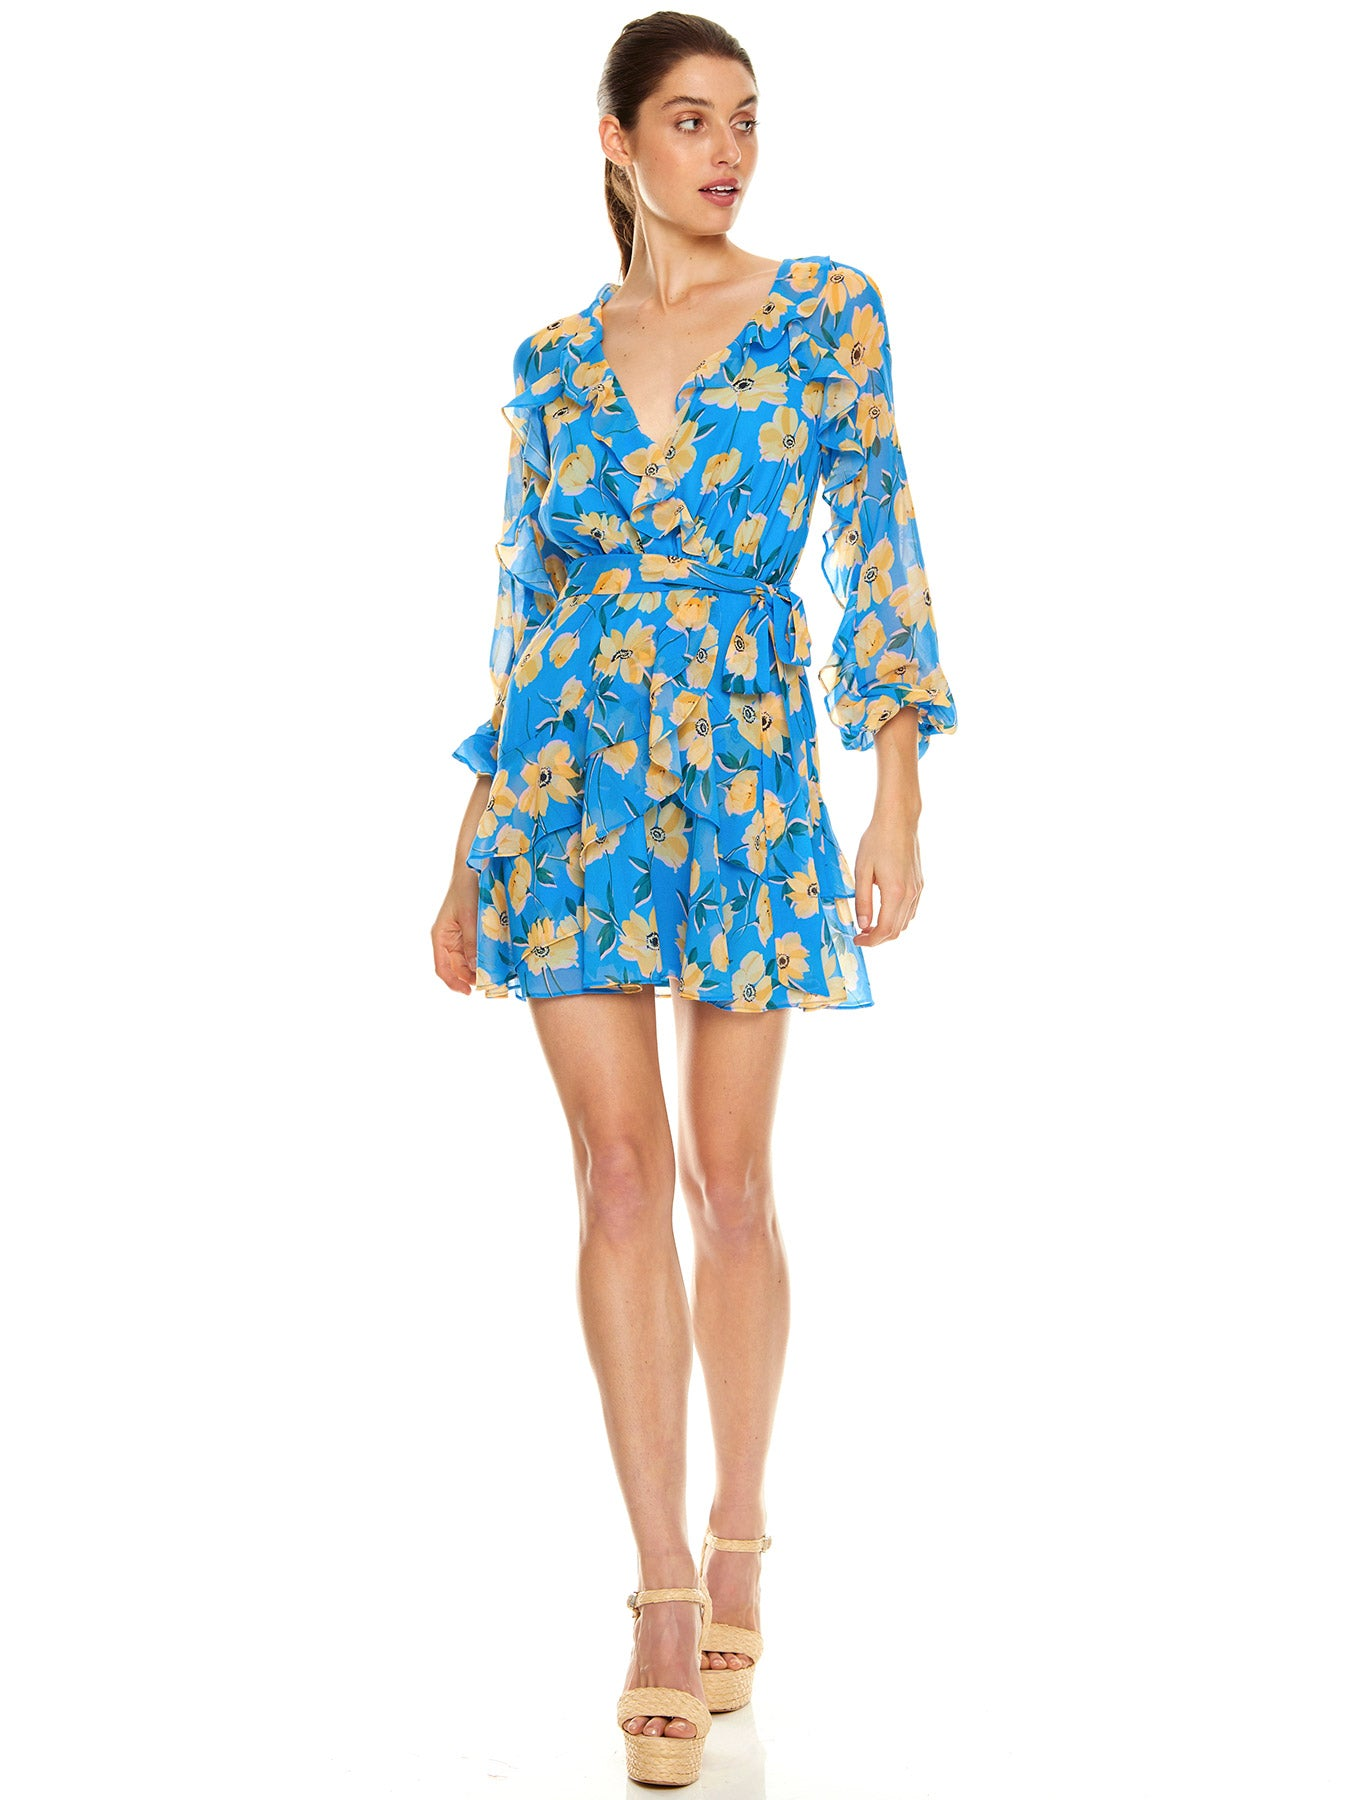 SICILY SWAY L/S MINI DRESS